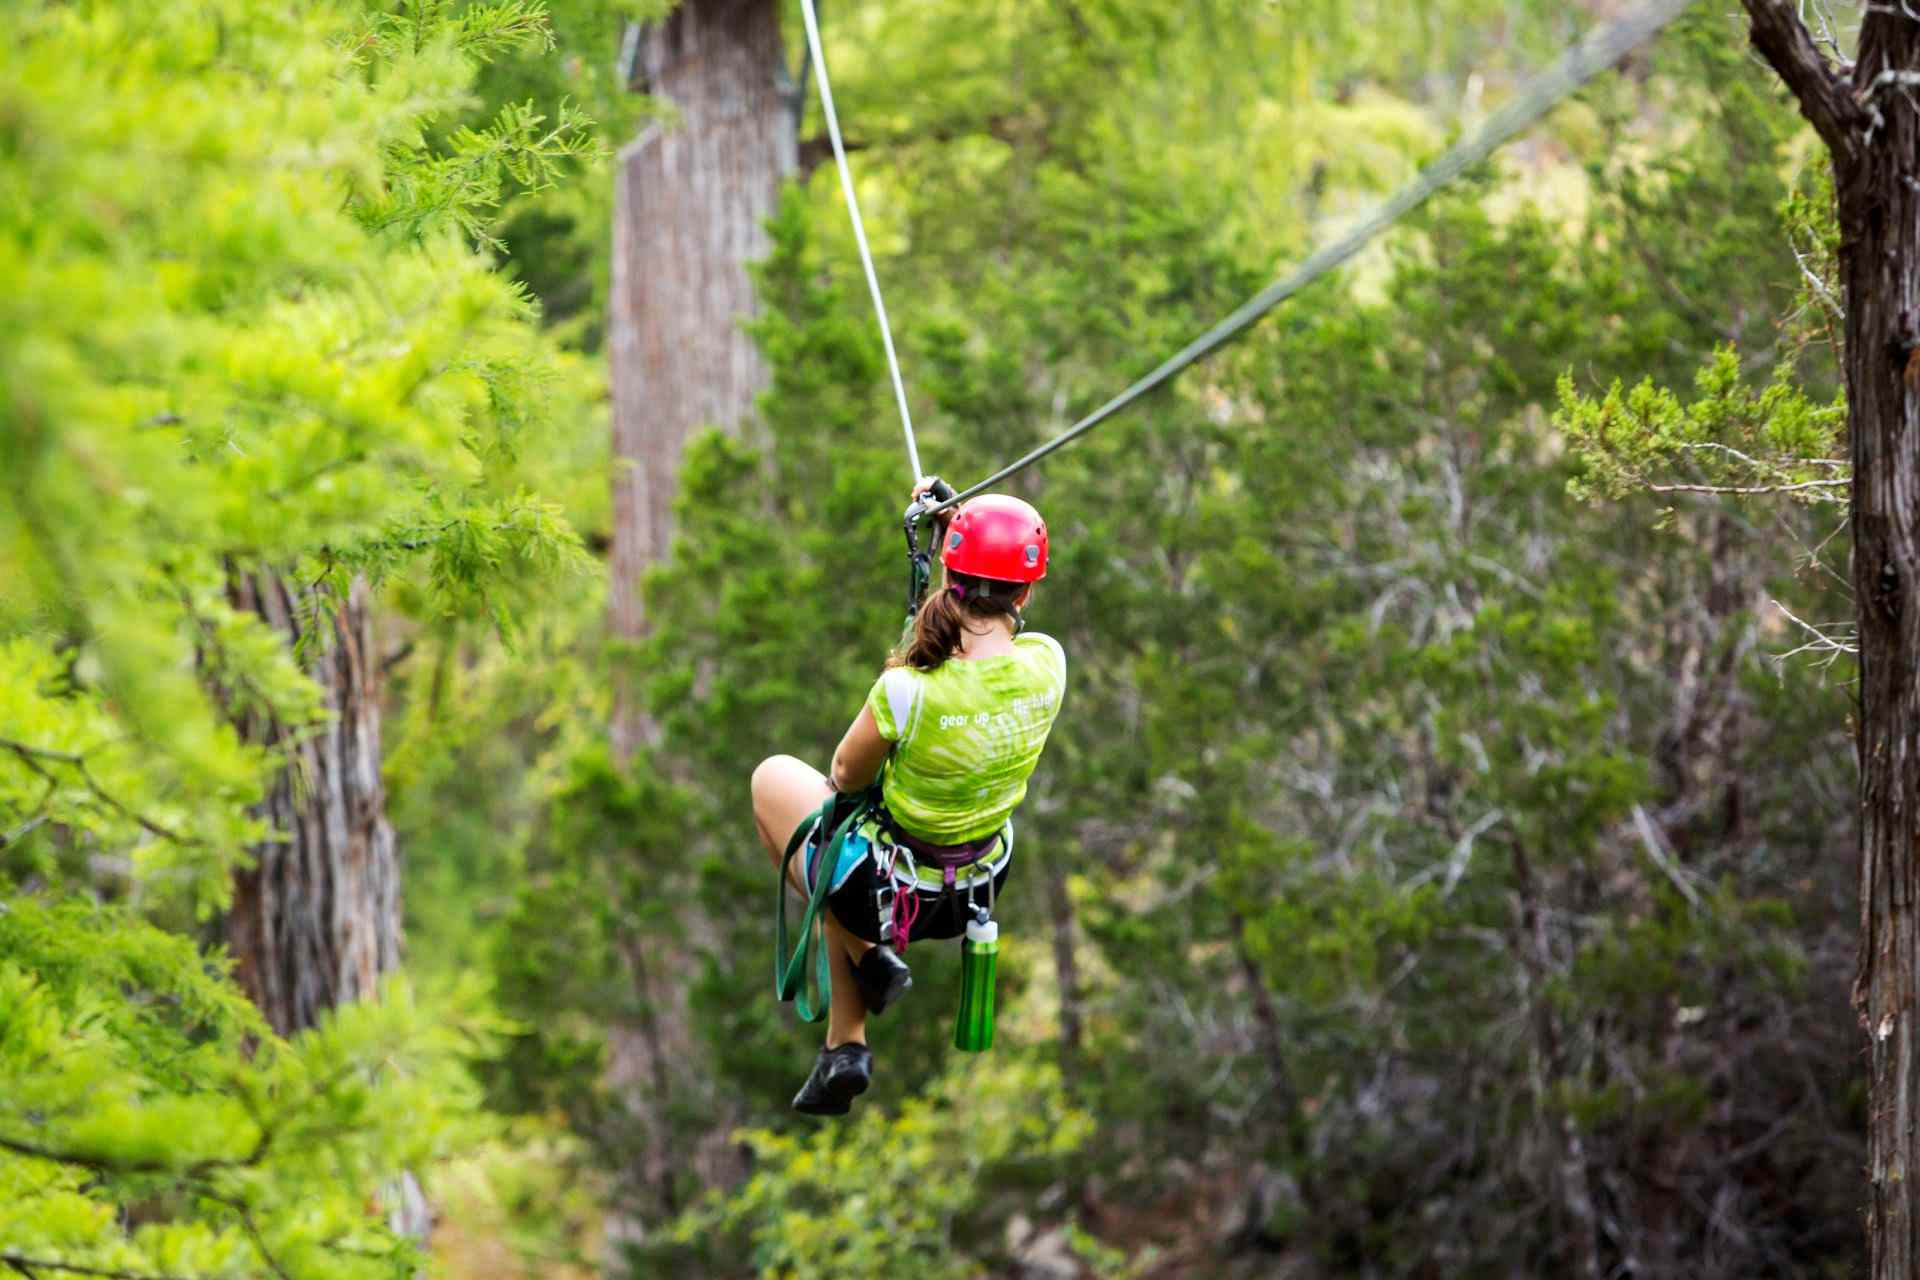 Back view of a woman on a zipline in a thick forest